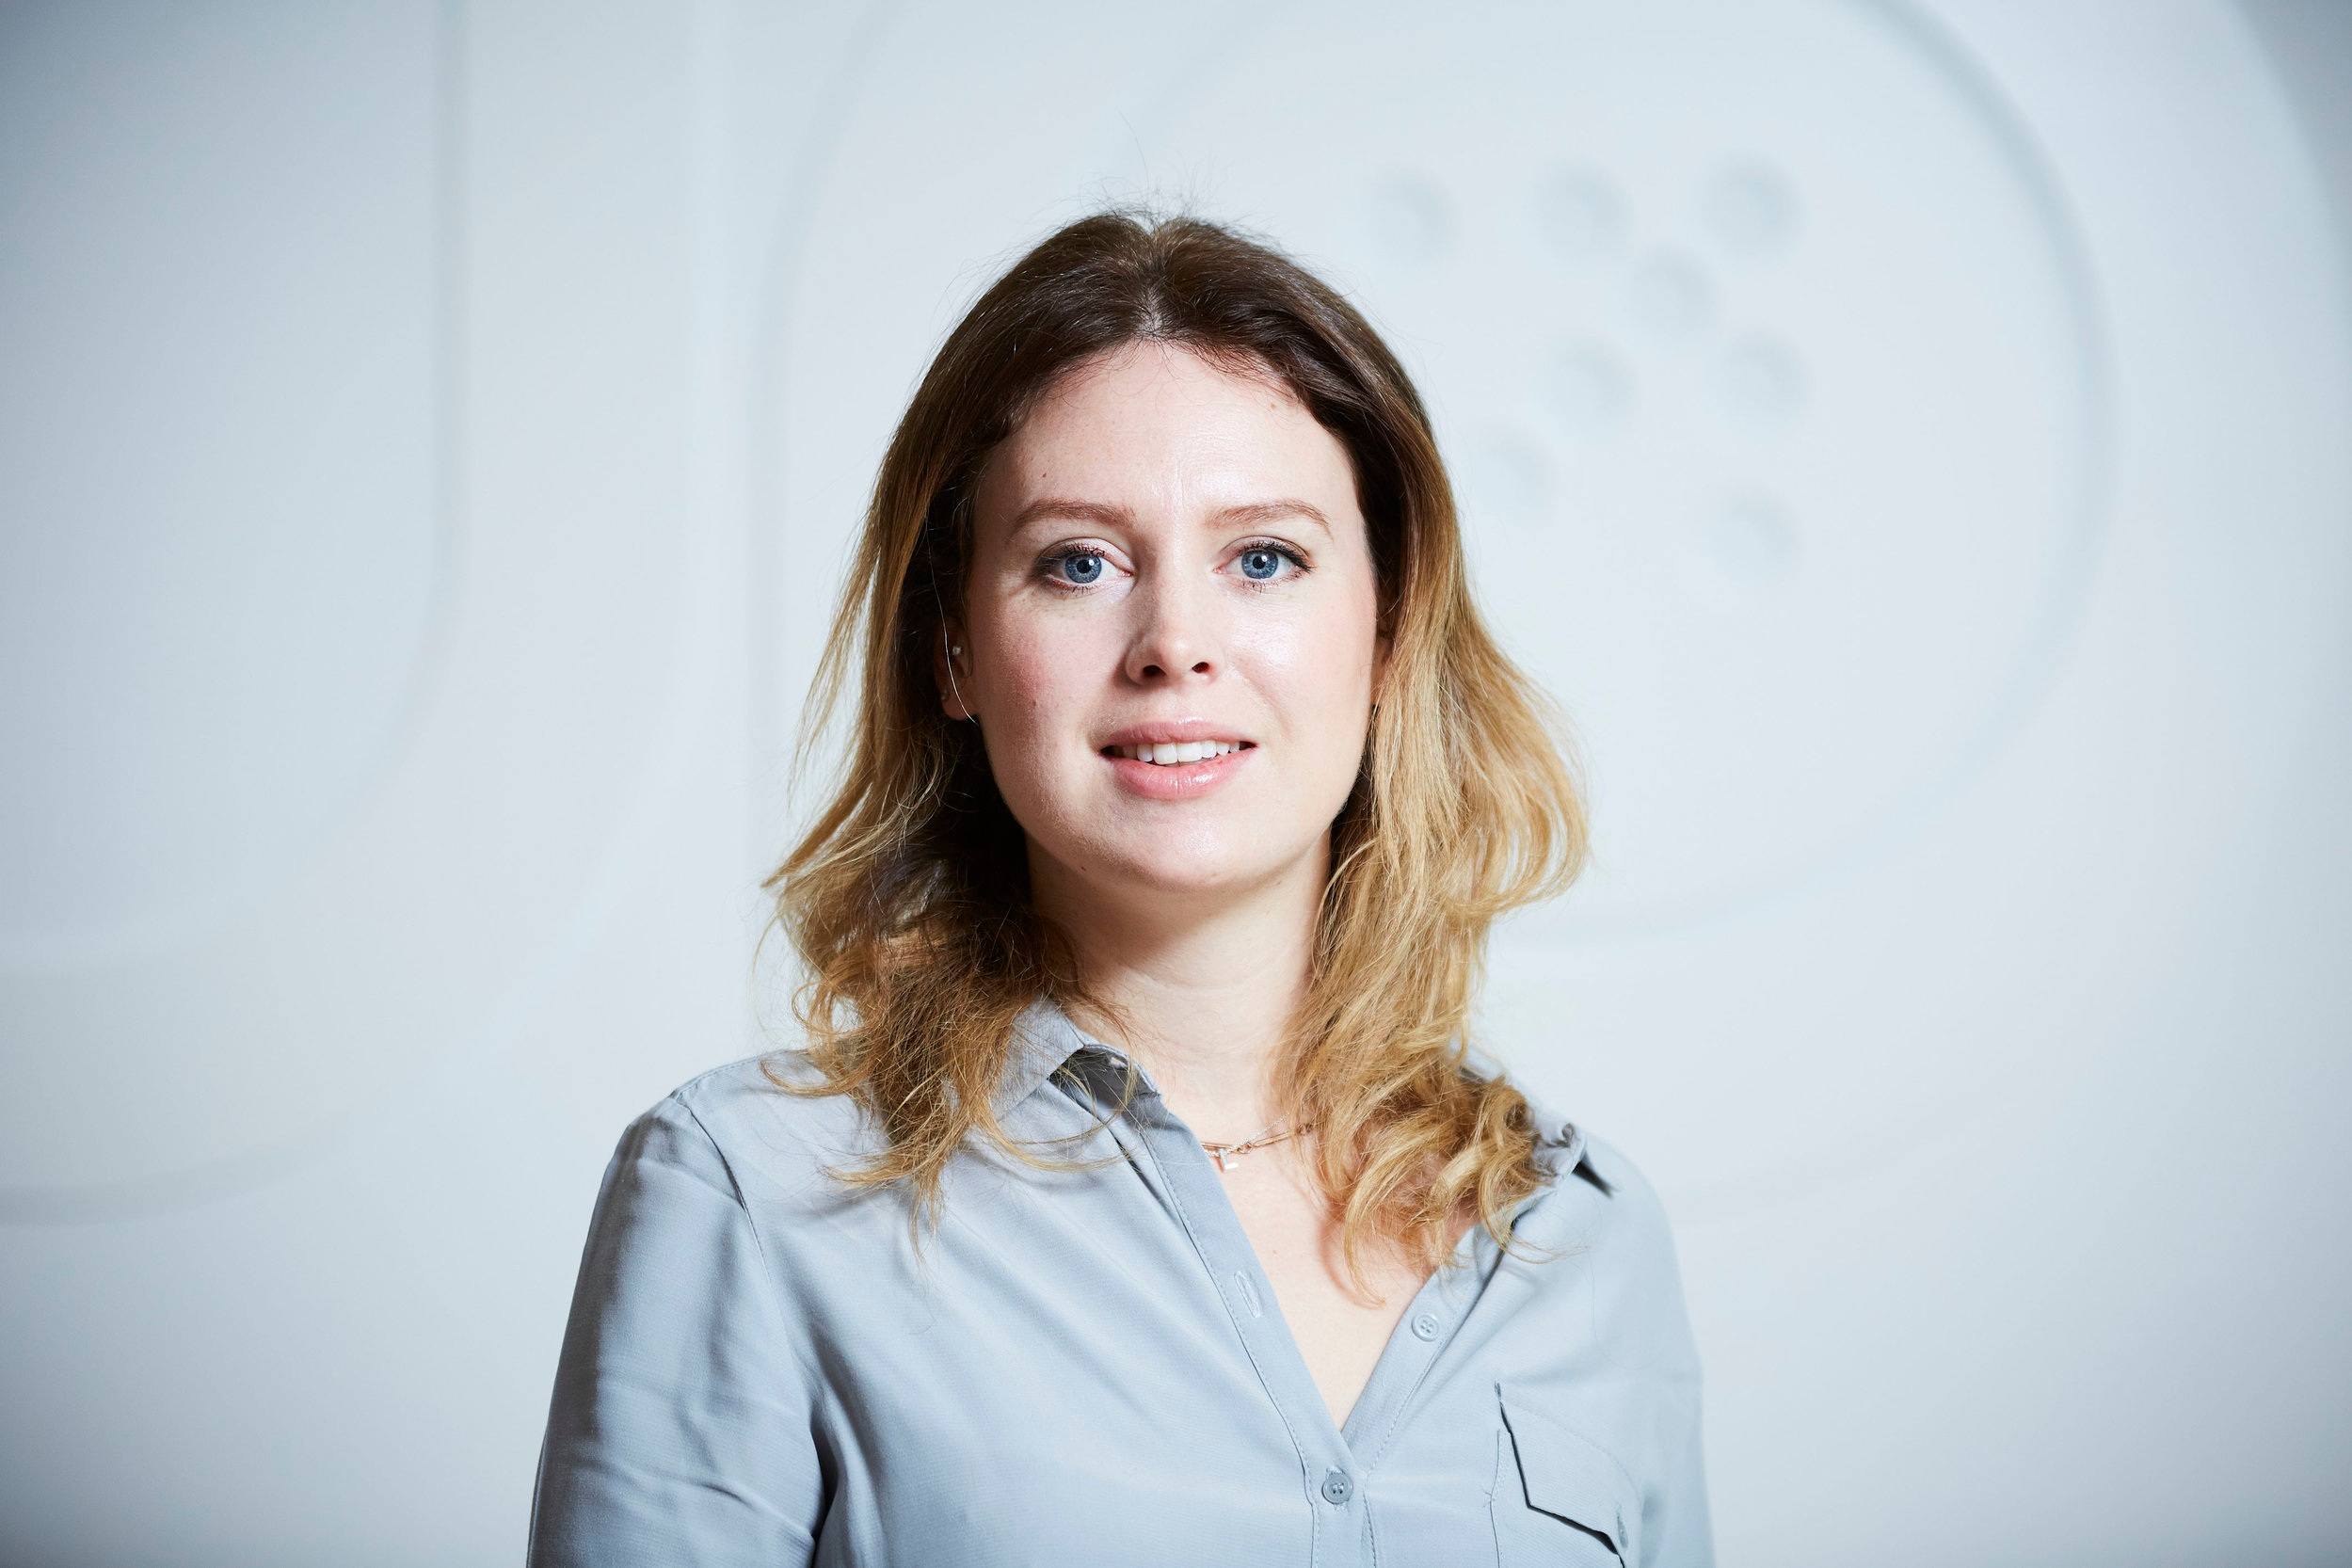 Lydia Shepherd - Director   Lydia is a Director at The Up Group, working across all functions talent to disrupt and transform established businesses in the FTSE 100-250/Fortune 500.  Prior to joining The Up Group, Lydia spent two years building a recruitment start-up, growing and operationalising their UK business. During her tenure, Lydia supported a variety of predominantly retail/consumer-facing businesses both listed and PE-backed through their ongoing digital transformation.  Lydia spent the bulk of her early career at established executive search PLC Norman Broadbent where she led the firm's CIO practice, delivering senior technology leadership roles for companies including Bupa, Tesco, Asda, MoneySuperMarket, Mitie and Telefónica O2.  Alongside executive search, Lydia is involved in helping organisations create the most diverse, creative and high-performing technology teams. She has researched and written several white papers concerning gender balance within the technology sector.